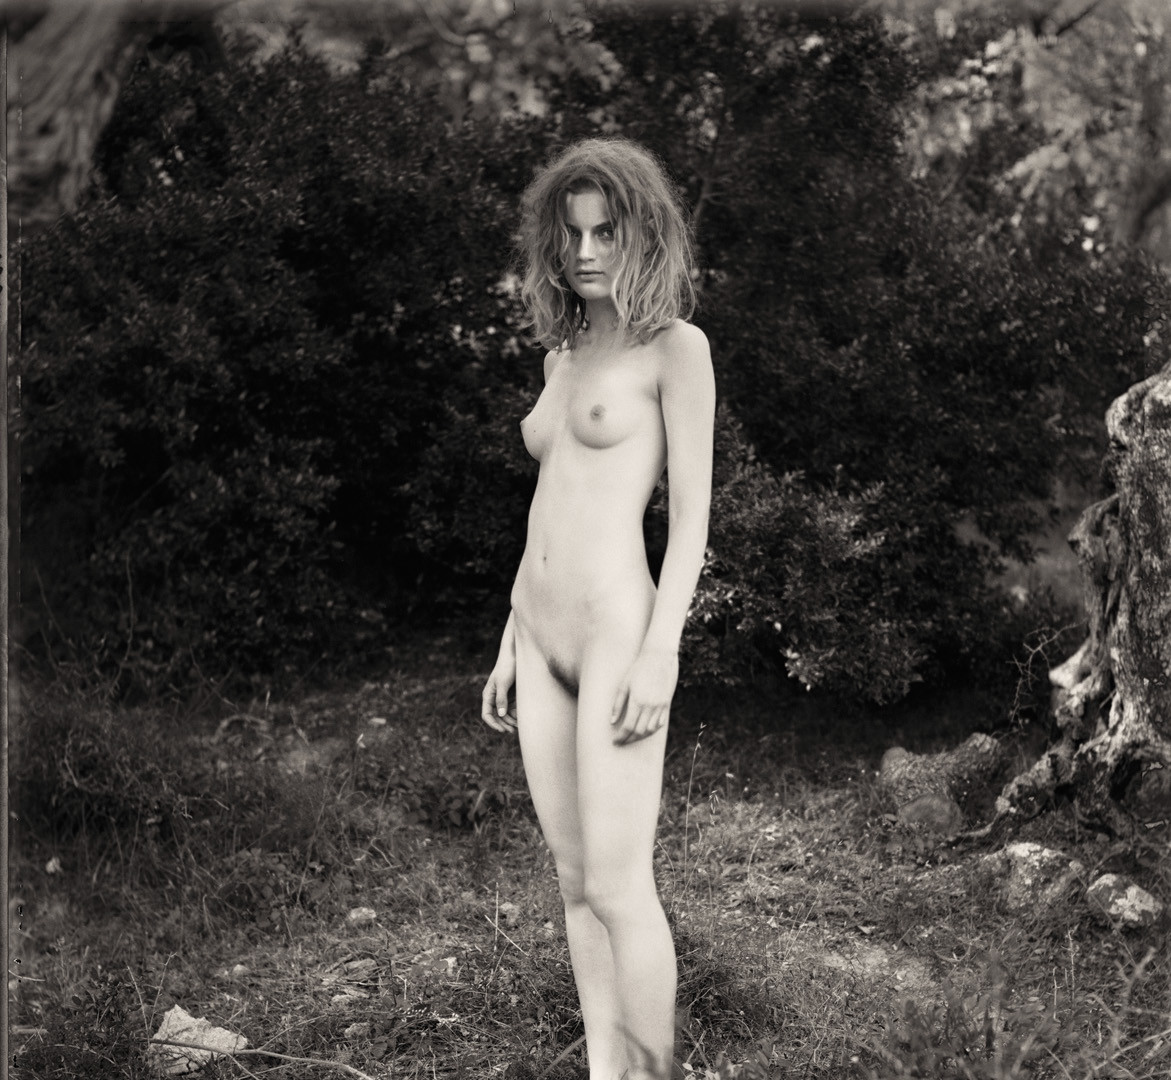 Paolo Roversi, Guinevere nude in the wood, Majorca, 1996